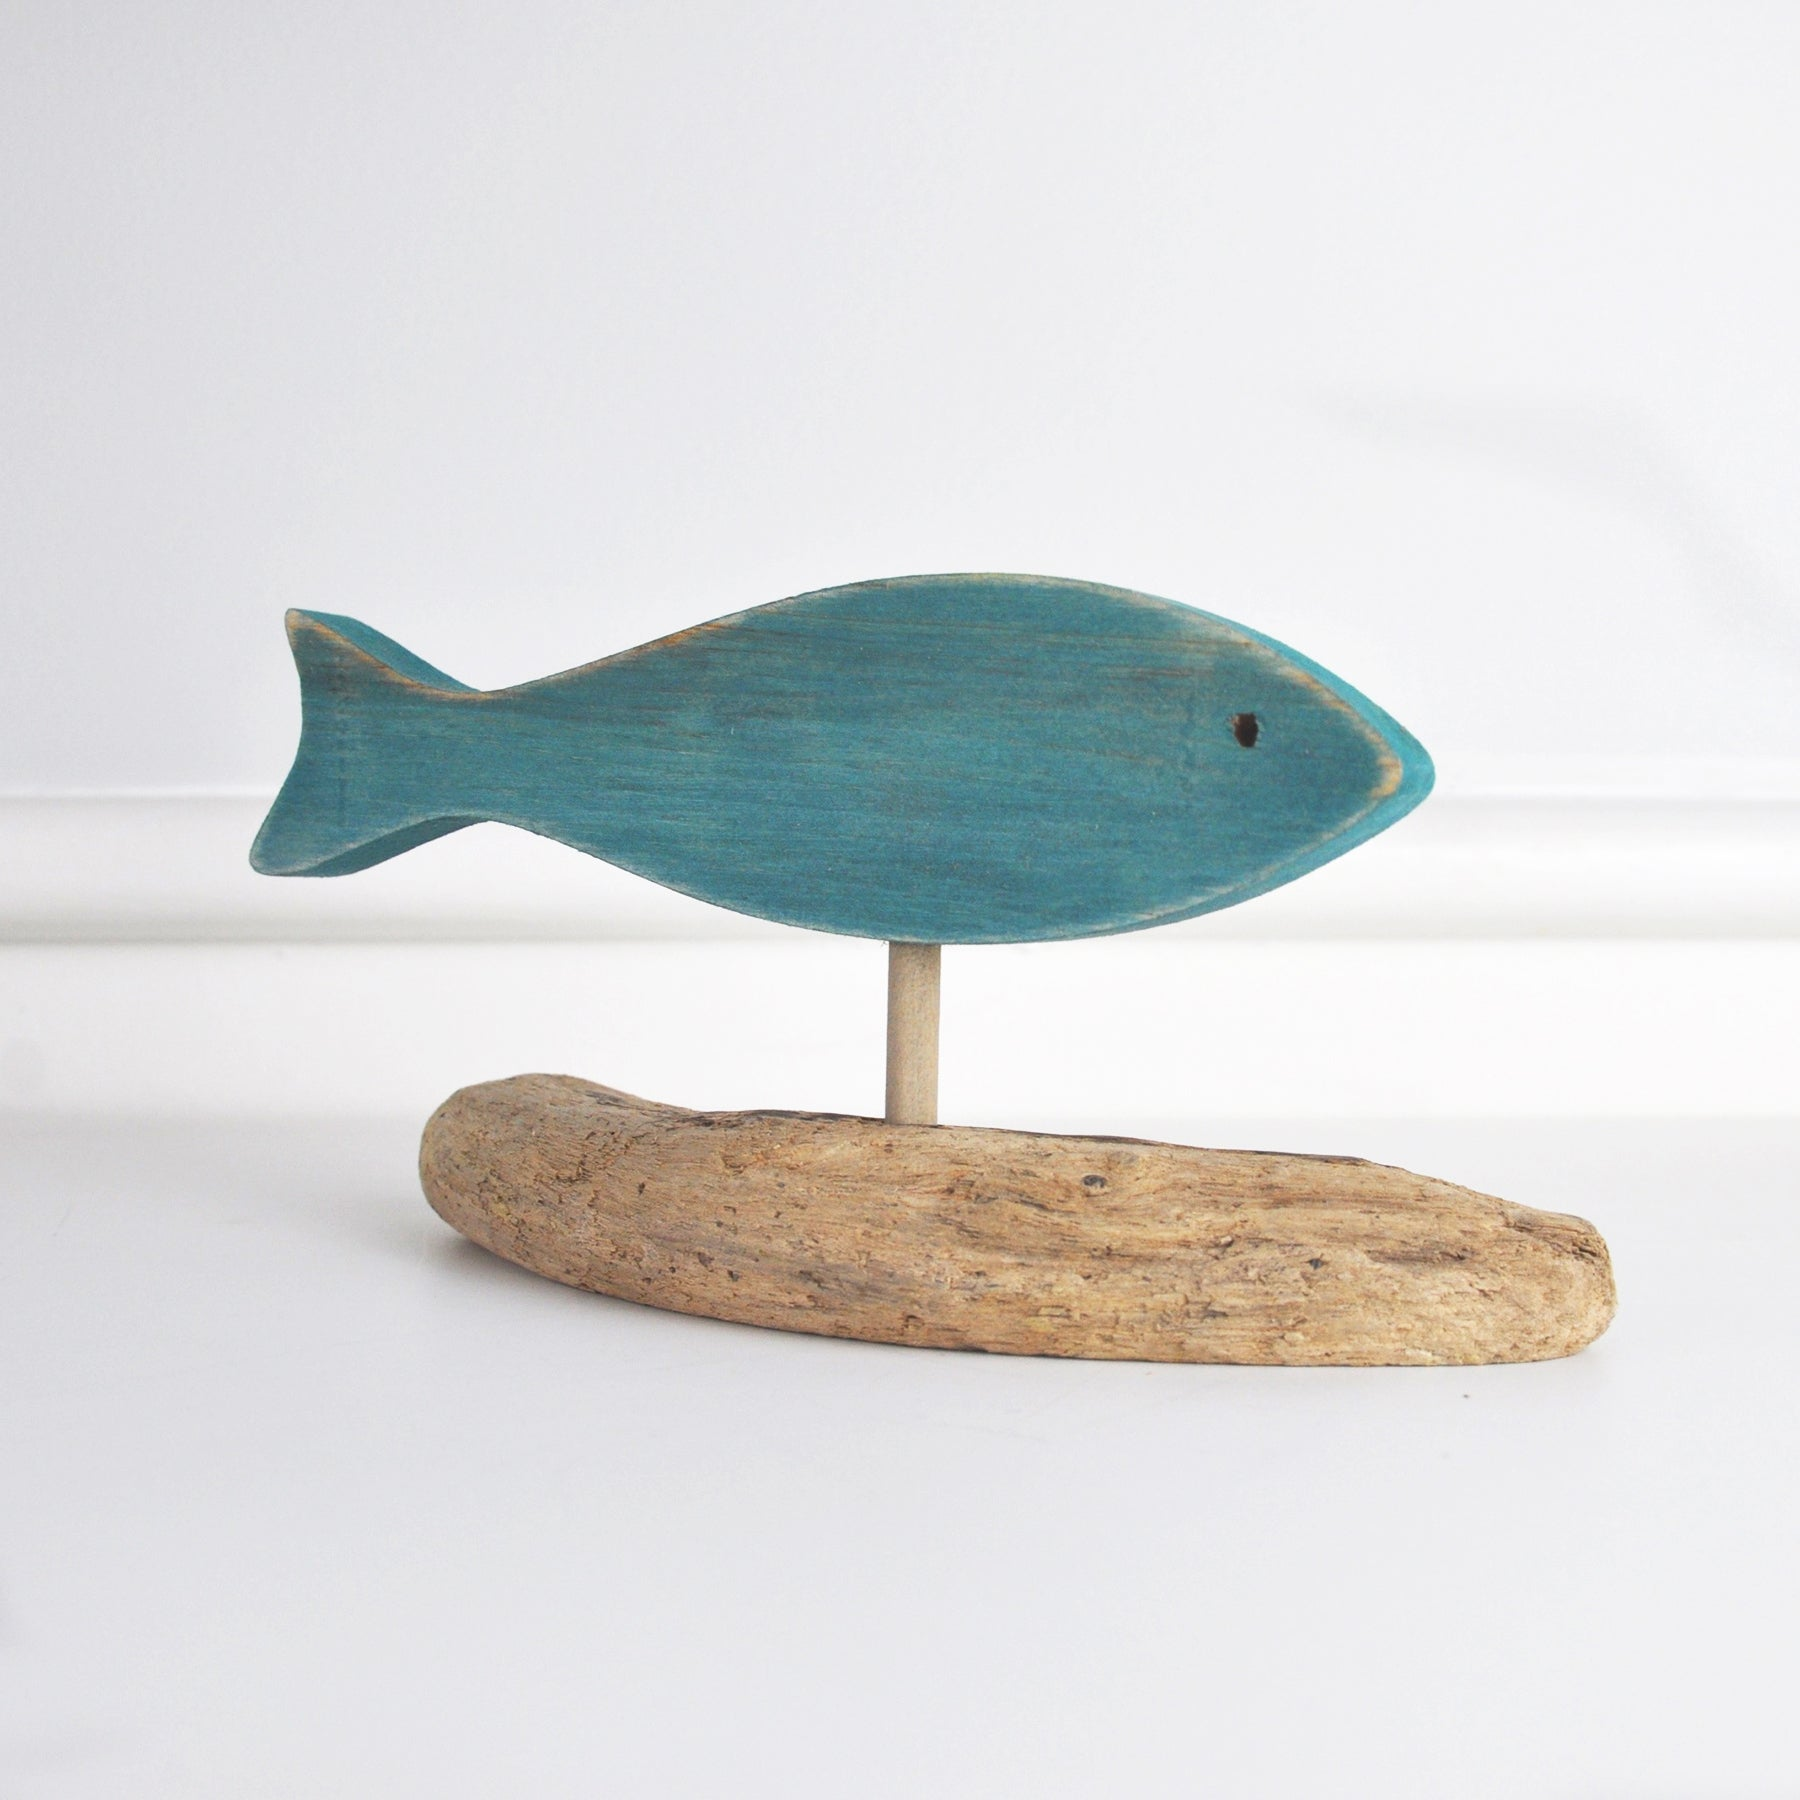 Jerry Walsh - Driftwood Fish - Teal